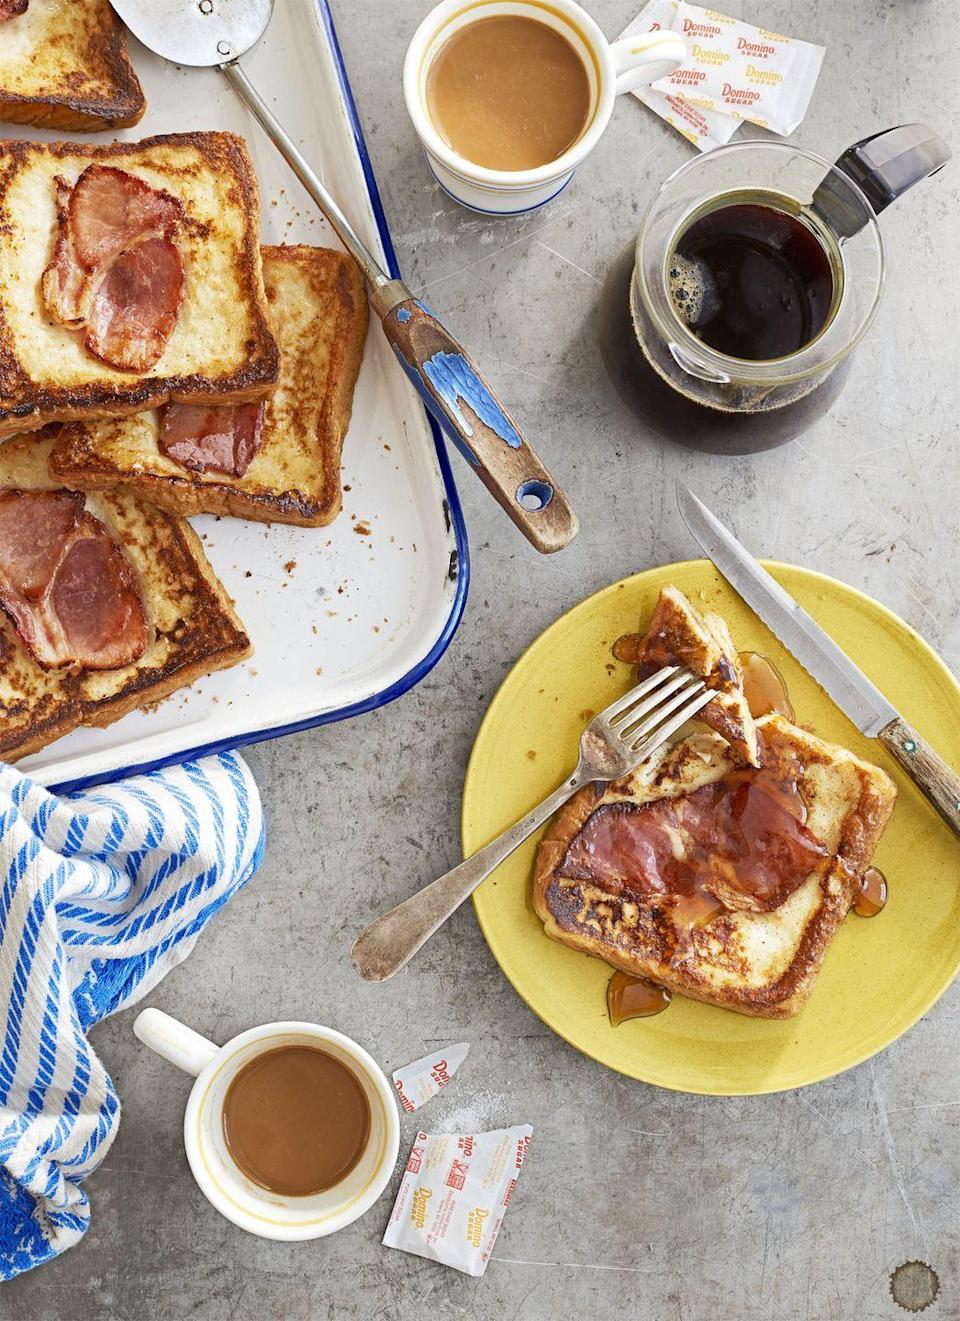 """<p>Sweet maple syrup, doughy French toast, and savory ham come together for the ultimate brunch dish.</p><p><strong><a href=""""https://www.countryliving.com/food-drinks/recipes/a41636/country-ham-french-toast-recipe/"""" rel=""""nofollow noopener"""" target=""""_blank"""" data-ylk=""""slk:Get the recipe"""" class=""""link rapid-noclick-resp"""">Get the recipe</a>.</strong></p>"""